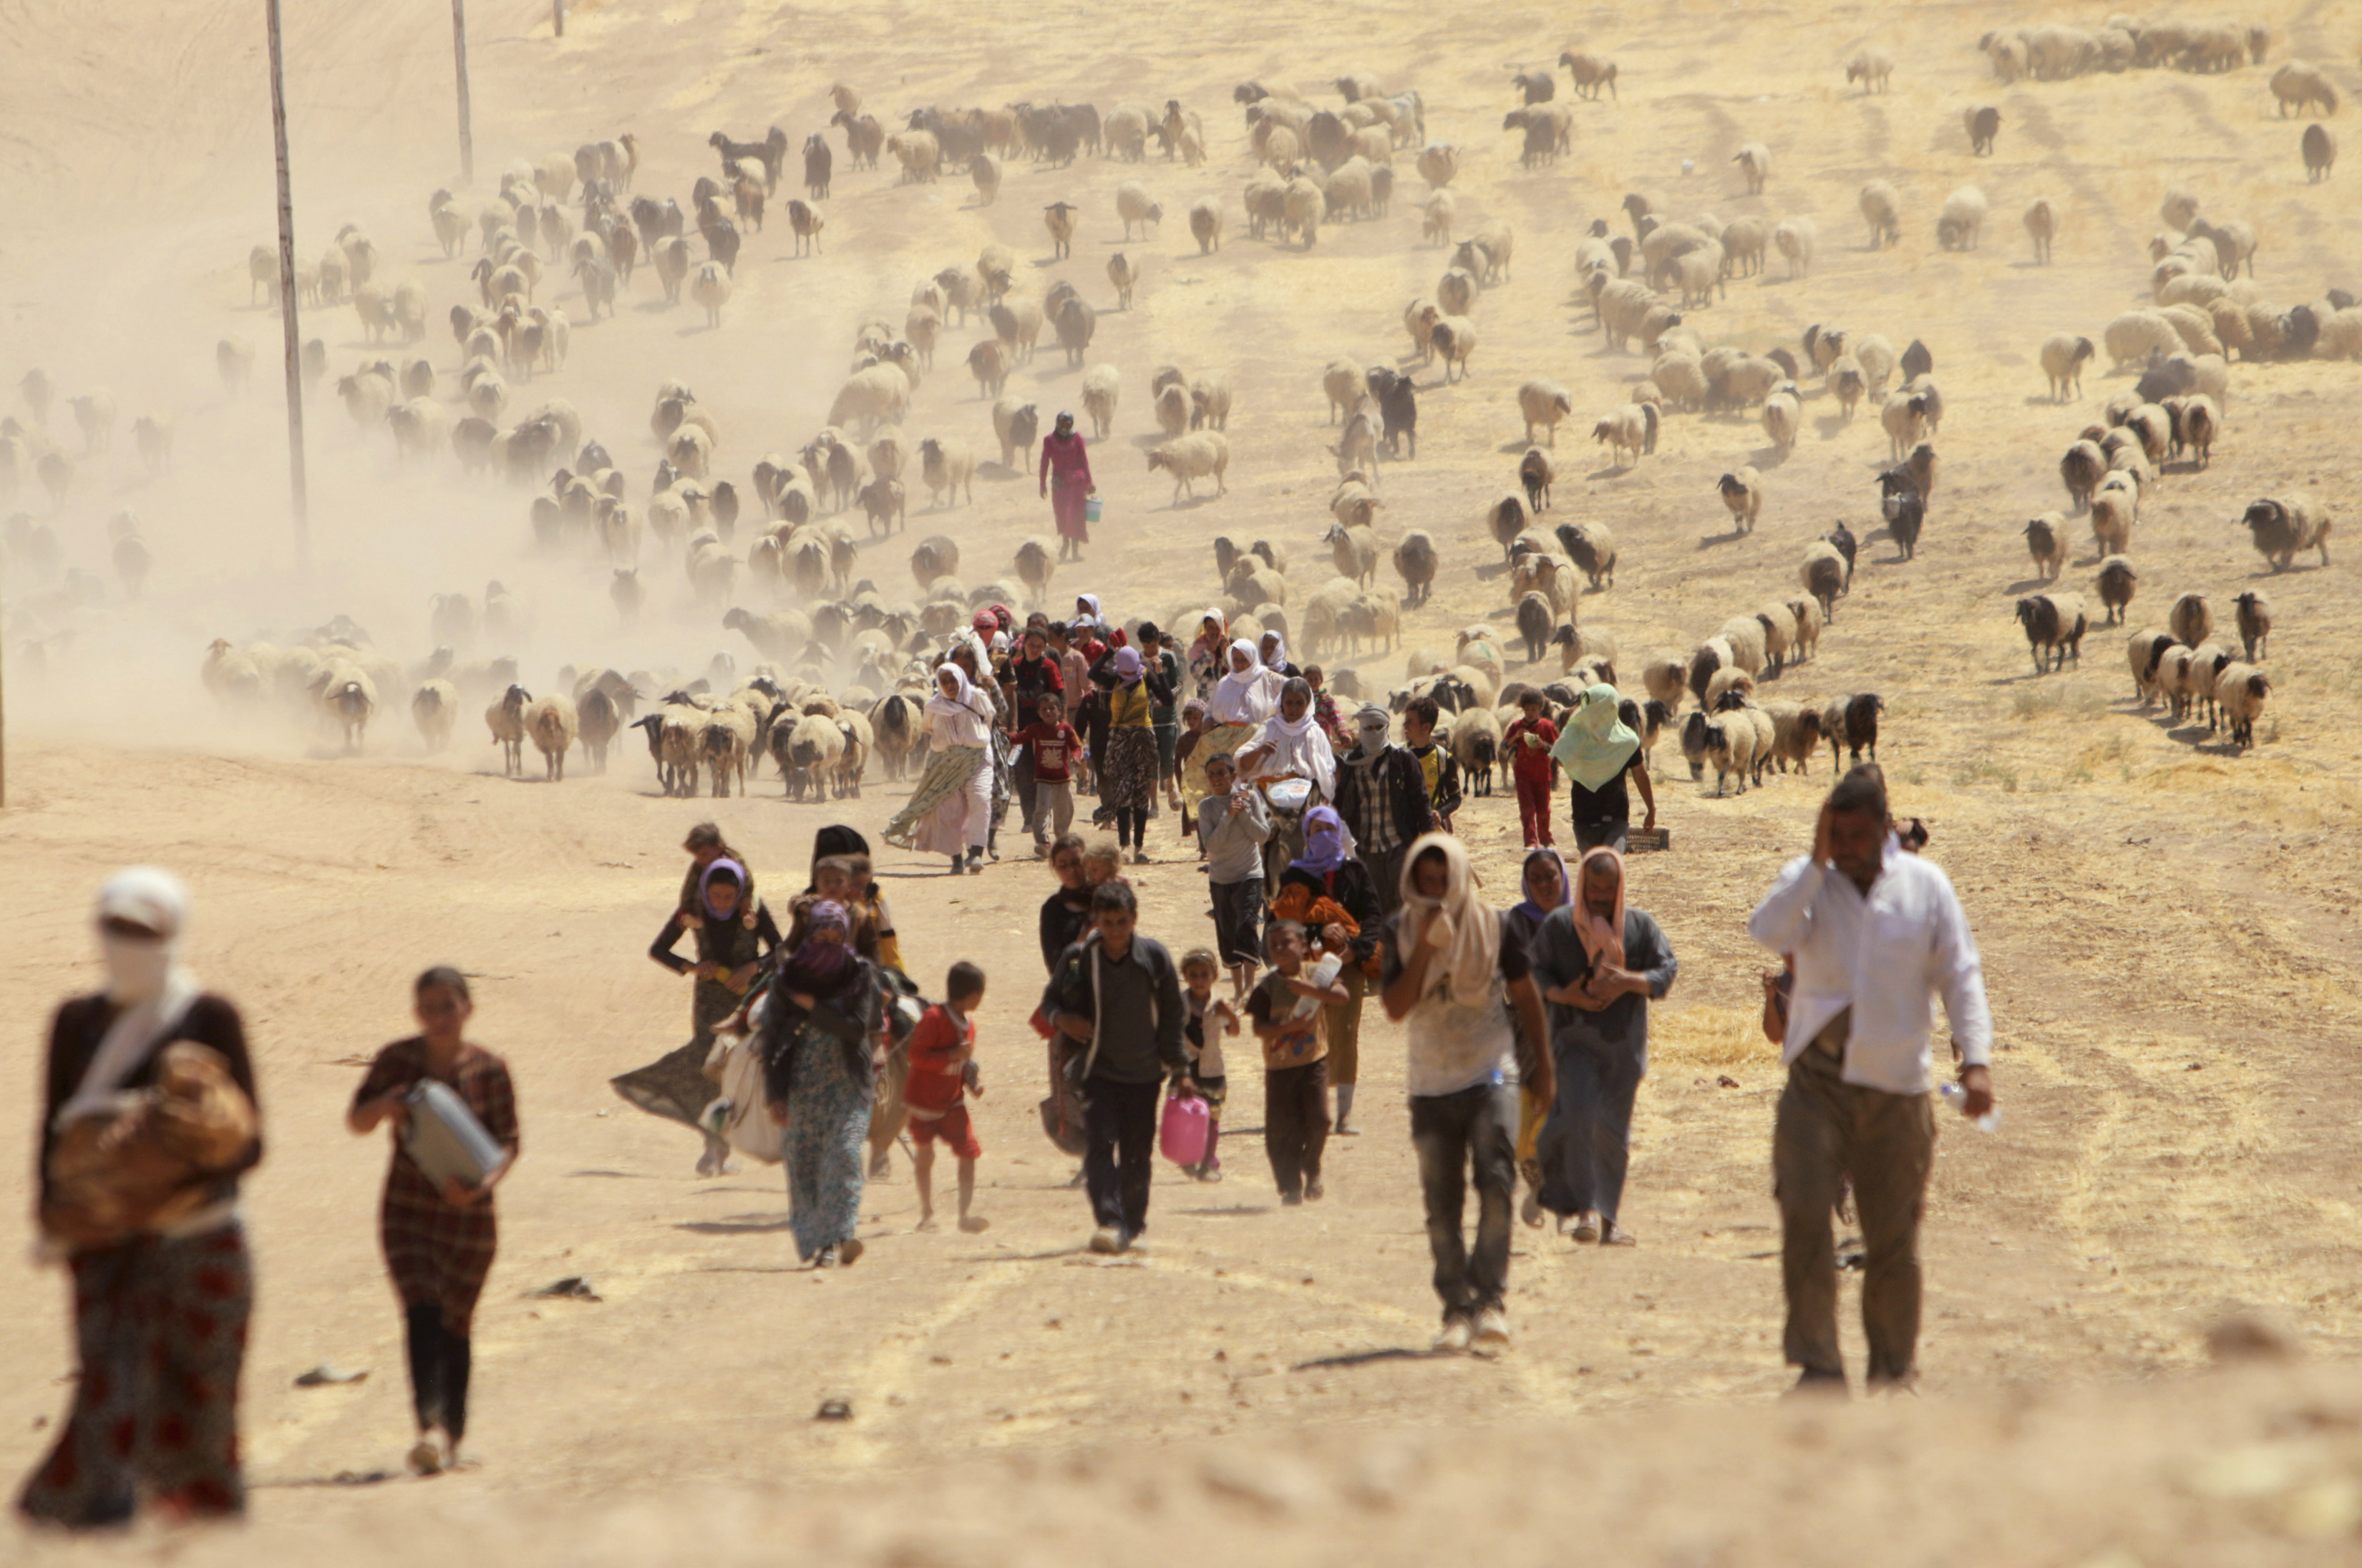 Displaced people from the minority Yazidi sect, fleeing violence from forces loyal to the Islamic State in Sinjar town, walk towards the Syrian border, on the outskirts of Sinjar mountain, near the Syrian border town of Elierbeh of Al-Hasakah Governorate August 10, 2014. Islamic State militants have killed at least 500 members of Iraq's Yazidi ethnic minority during their offensive in the north, Iraq's human rights minister told Reuters on Sunday. The Islamic State, which has declared a caliphate in parts of Iraq and Syria, has prompted tens of thousands of Yazidis and Christians to flee for their lives during their push to within a 30-minute drive of the Kurdish regional capital Arbil. Picture taken August 10, 2014. REUTERS/Rodi Said (IRAQ - Tags: POLITICS CIVIL UNREST CONFLICT TPX IMAGES OF THE DAY) - RTR41YW4